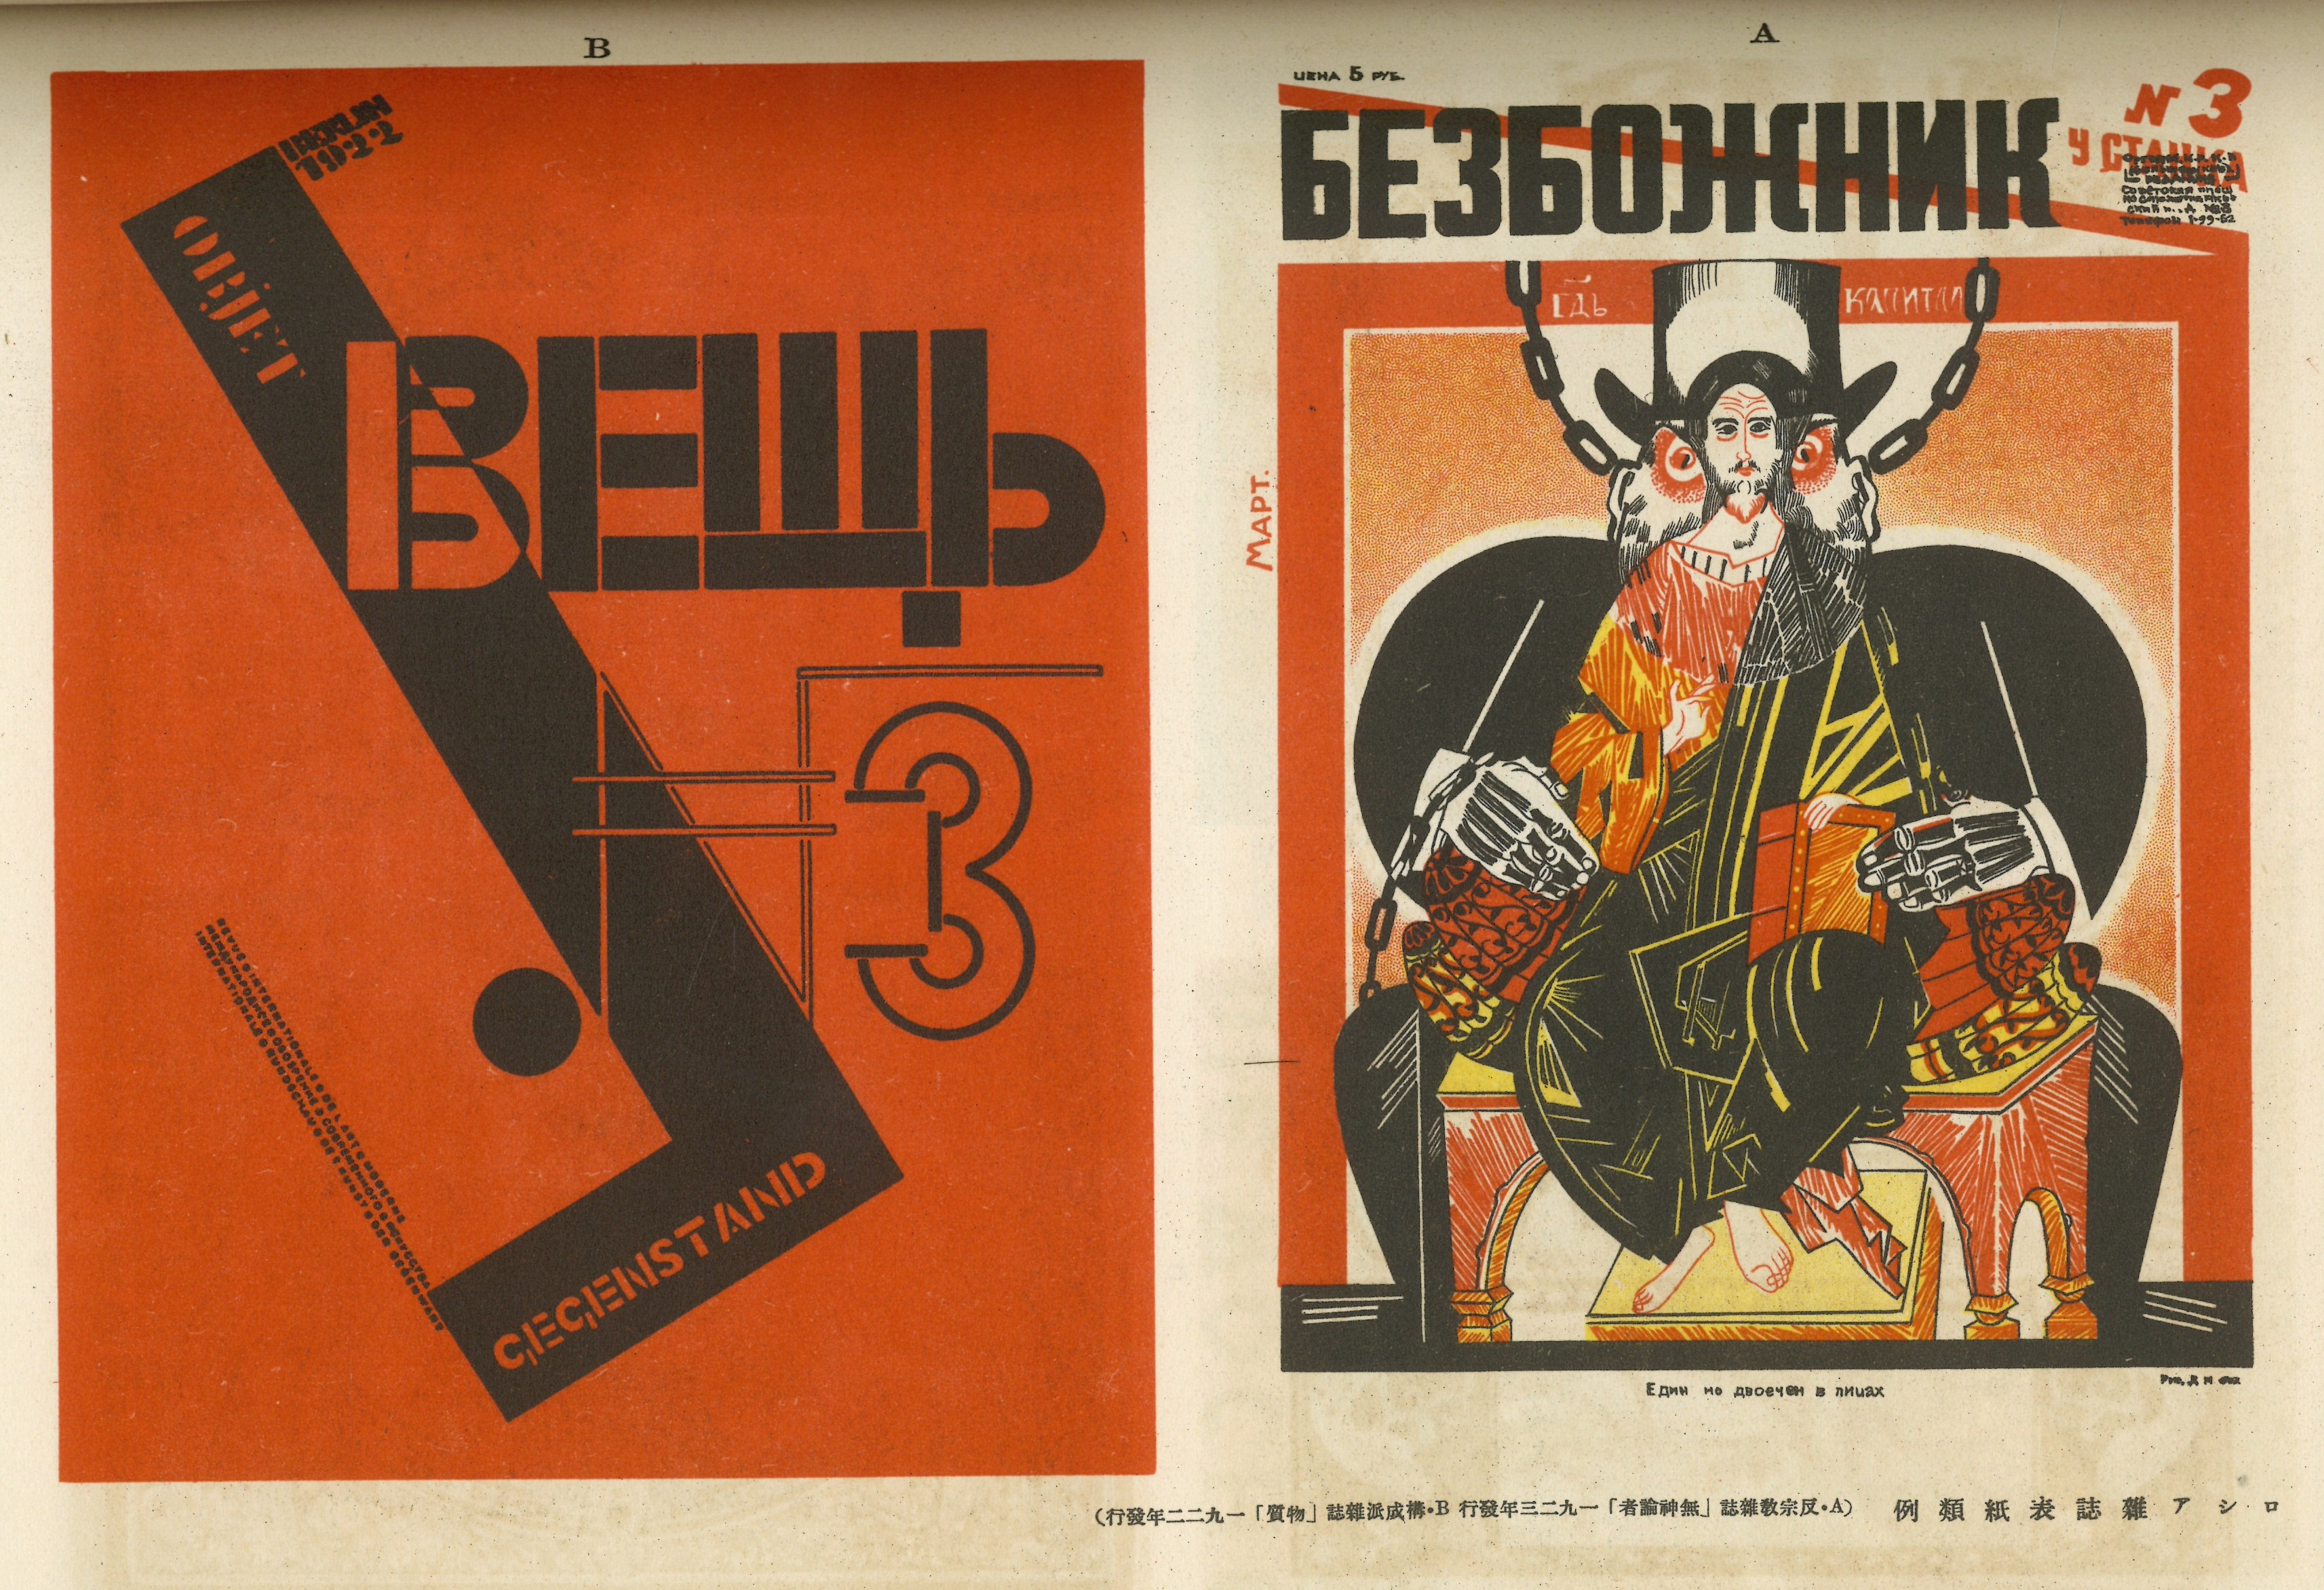 the most influential graphic arts blog of late 1920s tokyo gendai according to scholar gennifer weisenfeld see her excellent essay ese modernism and consumerism forging the new artistic field of sh333gy333 bijutsu